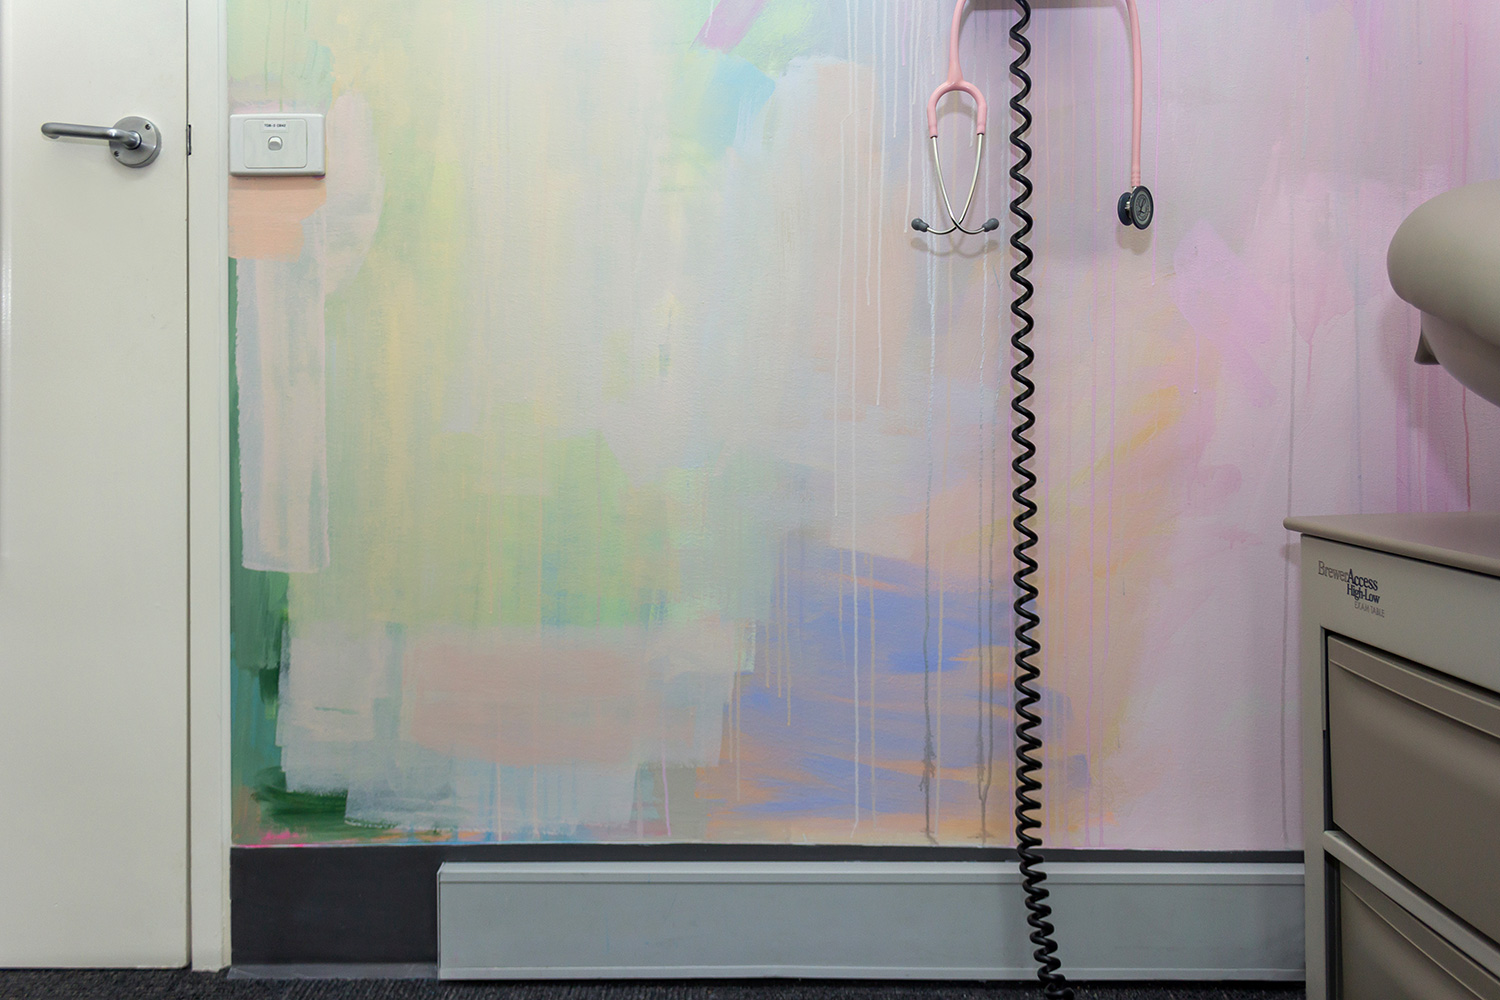 Close up of pastel abstract mural painted in an OB/GYN office, featuring pink stethoscope, medical equipment and paint details.